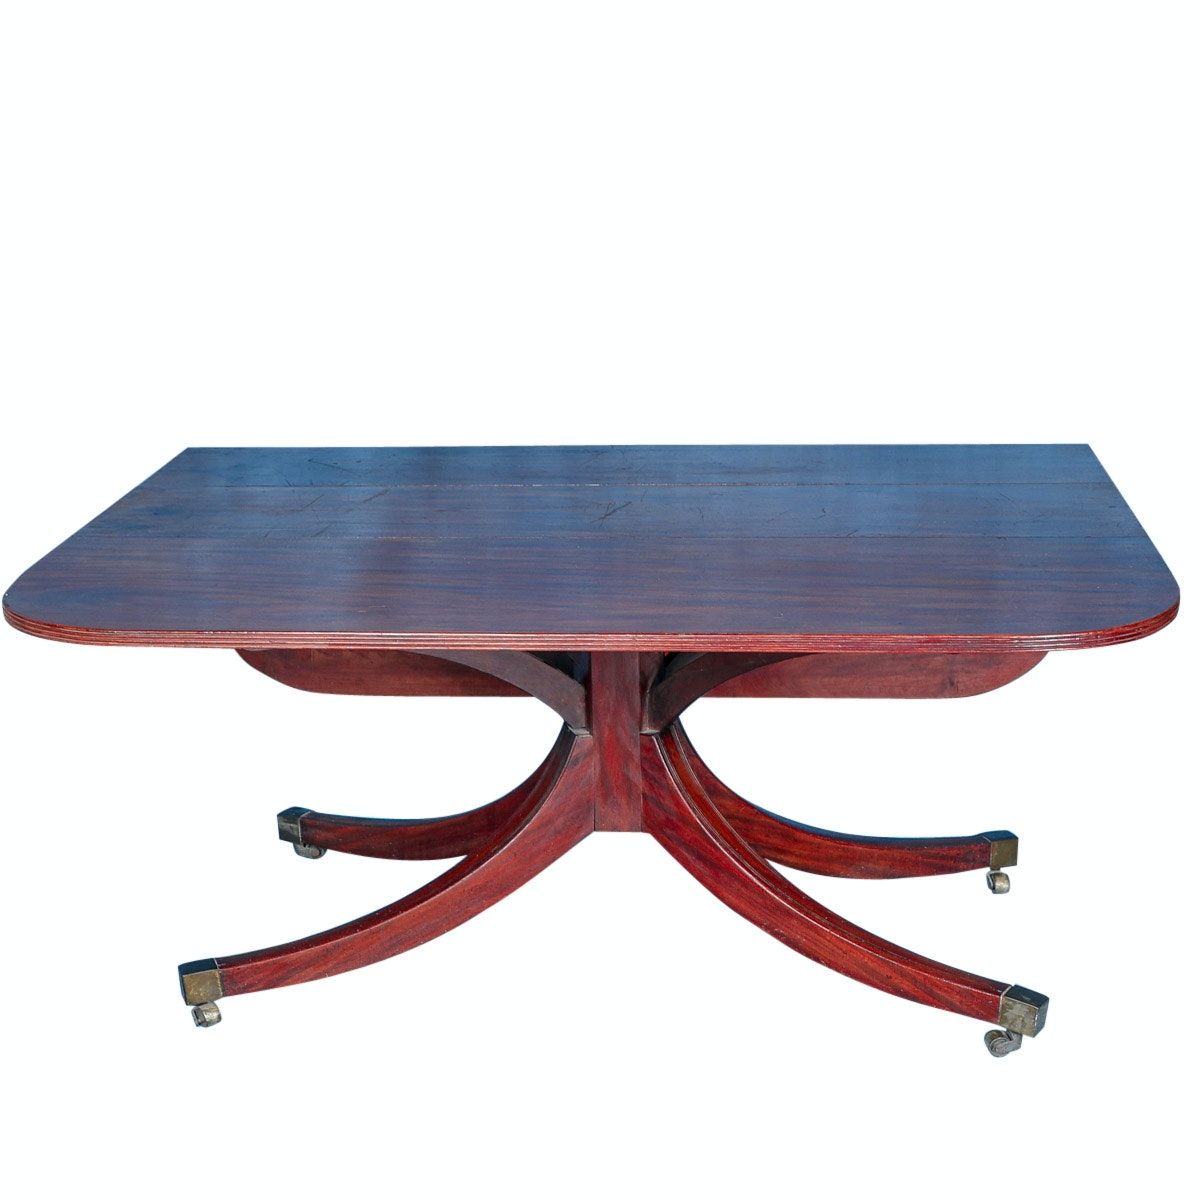 """Antique George III """"Sympathetic"""" Dining Table by William Pocock*"""